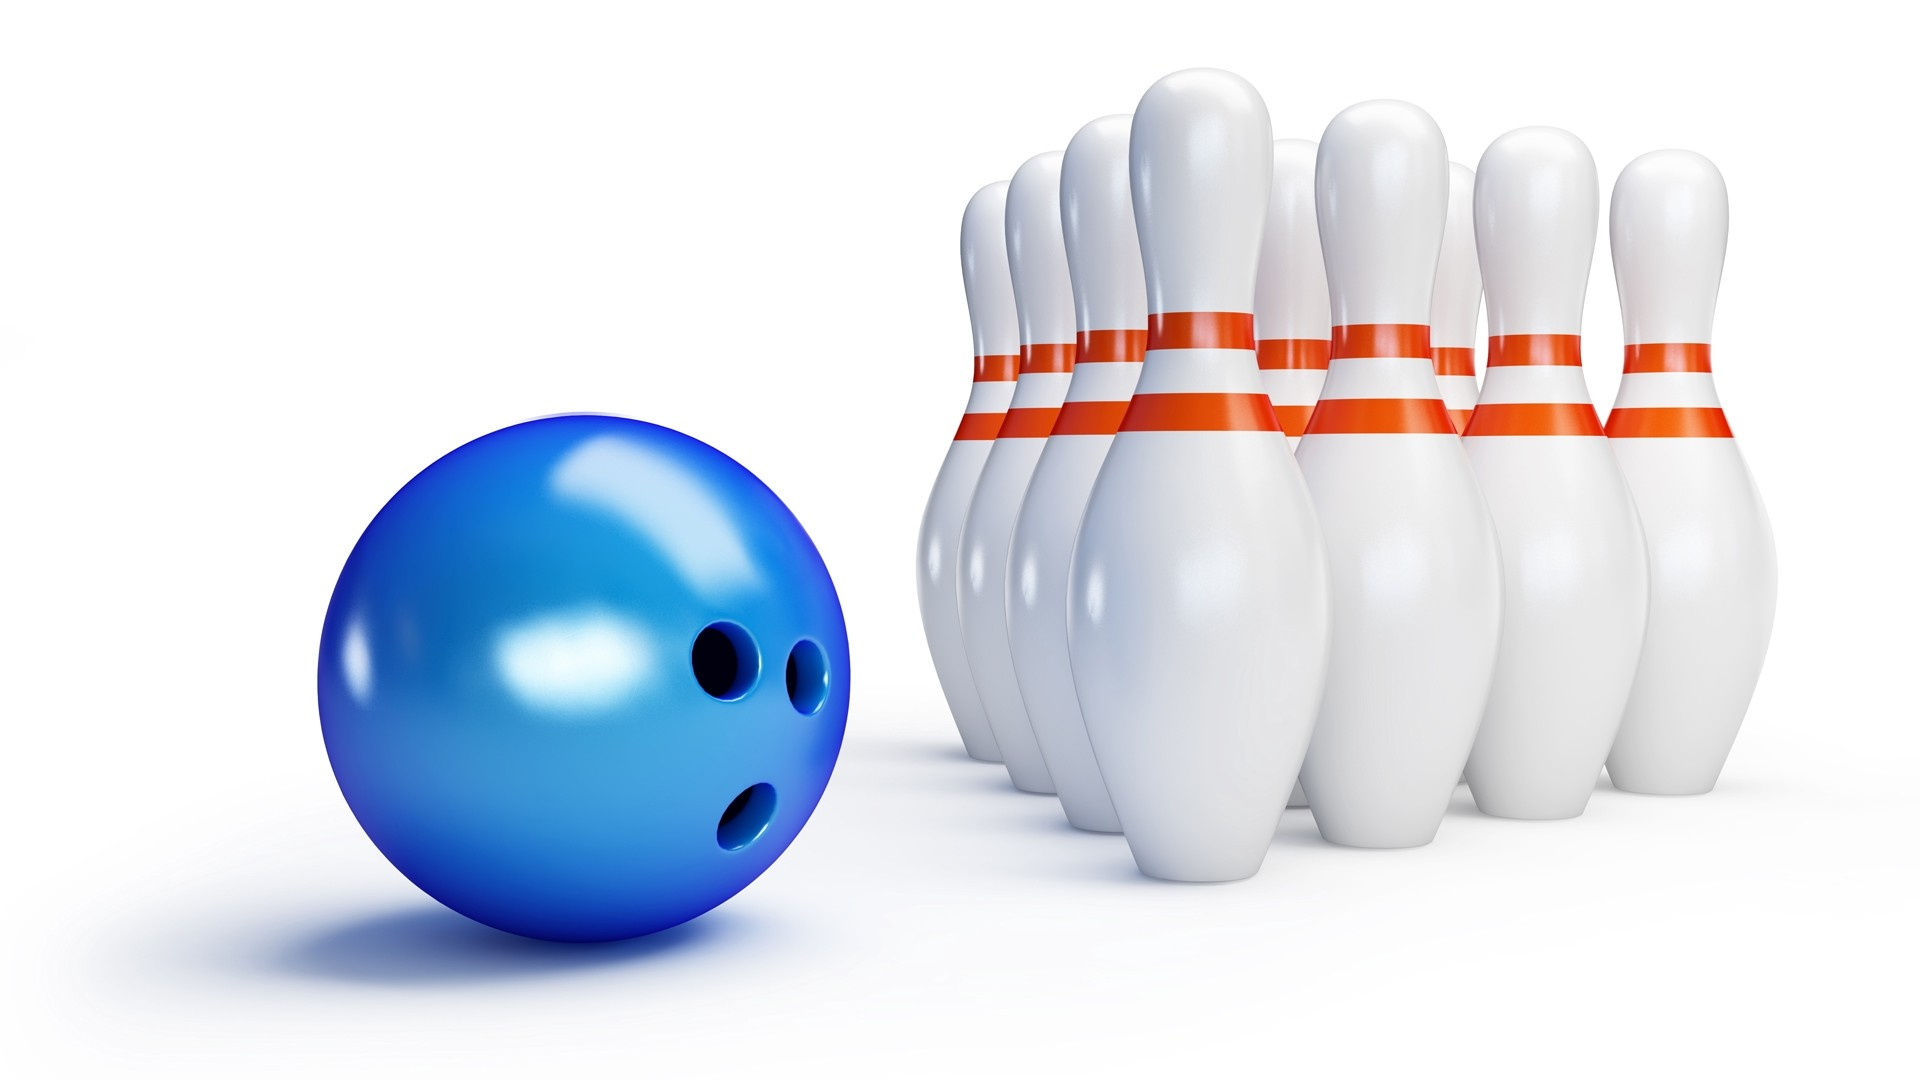 5 pin bowling youtube water well diagram setup hd wallpaper hintergrund 1920x1080 id 309172